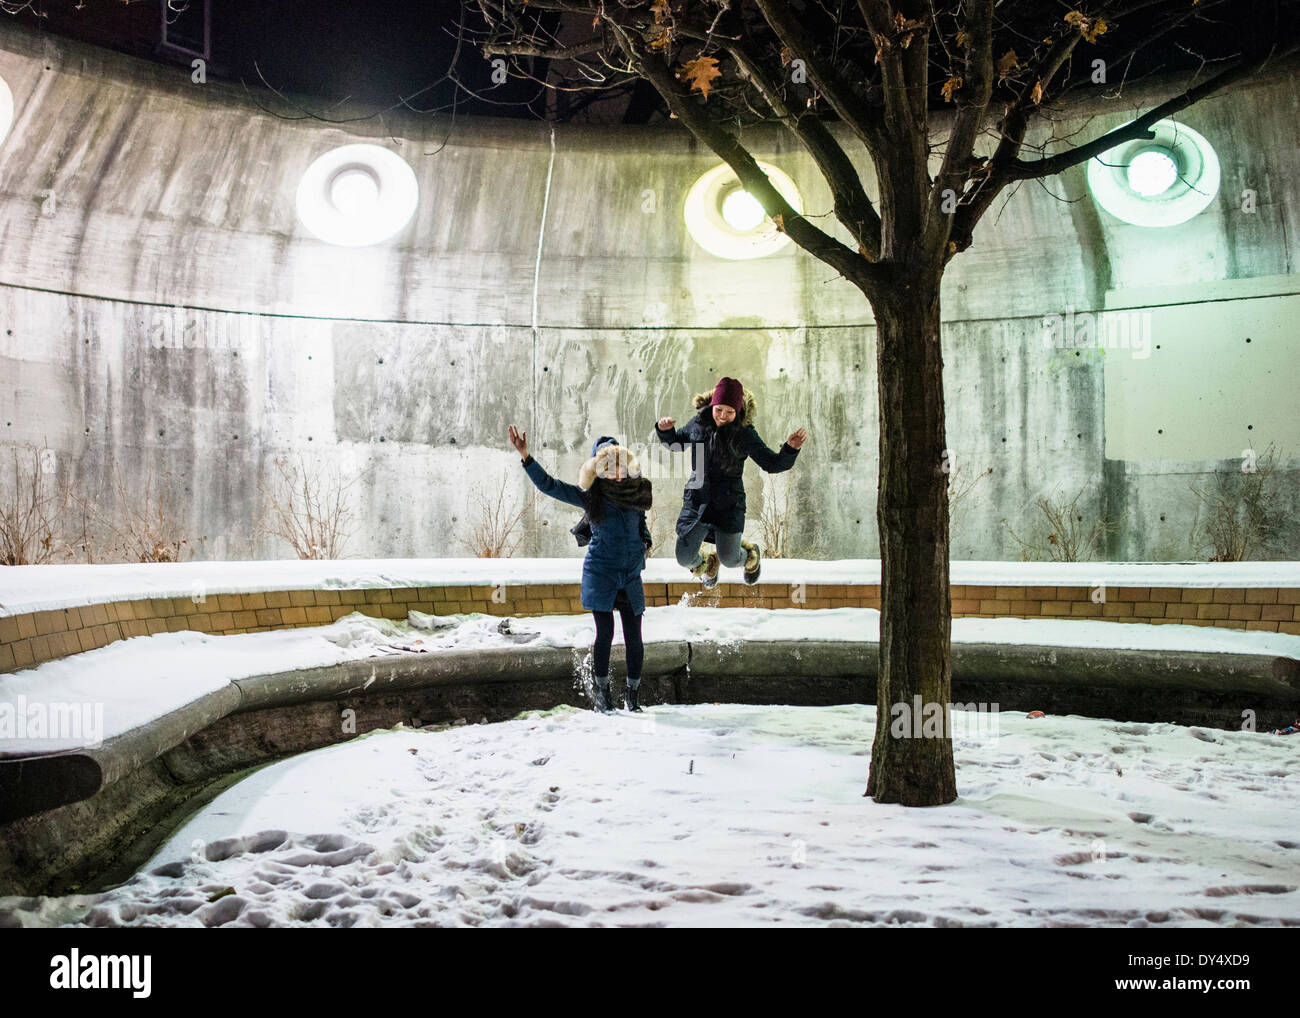 Friends jumping in snow - Stock Image